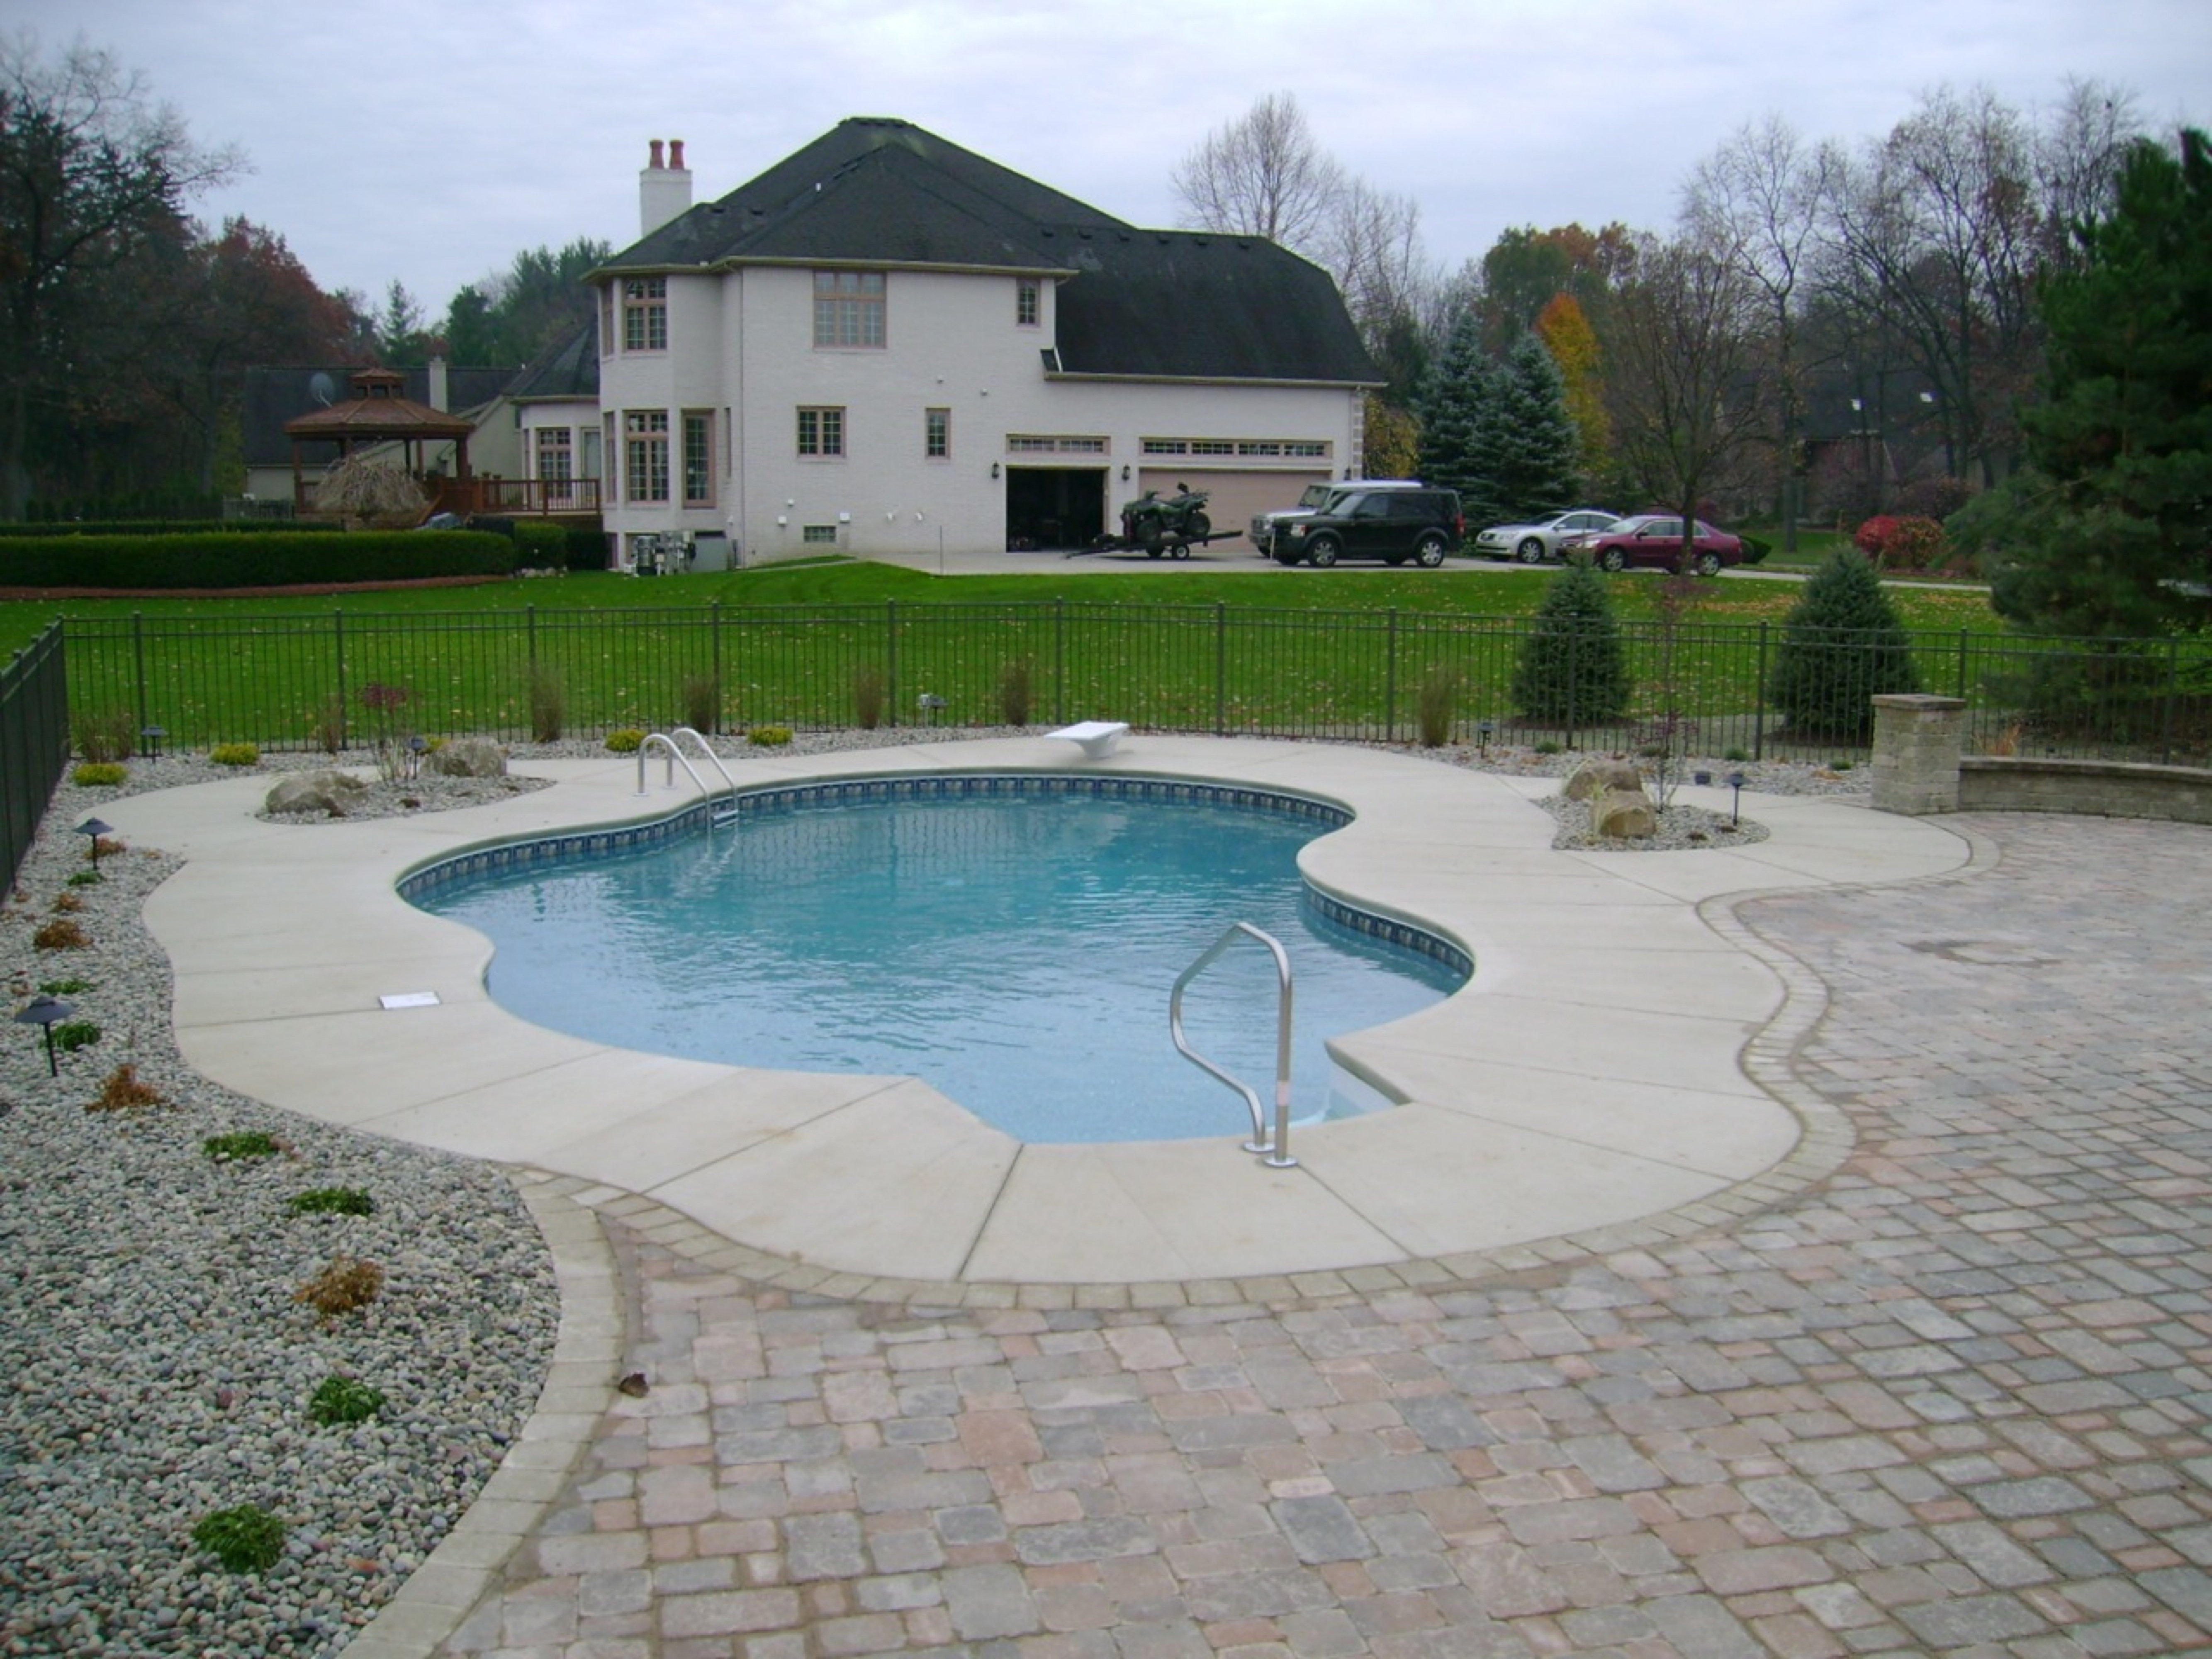 Inground Pool Design Ideas modern inground swimming pool design ideas saddle river nj 600x400 pool design Inspiration Design Small Yards For Swimming Pool In The Backyard Ideas Inground Pool Ideas For